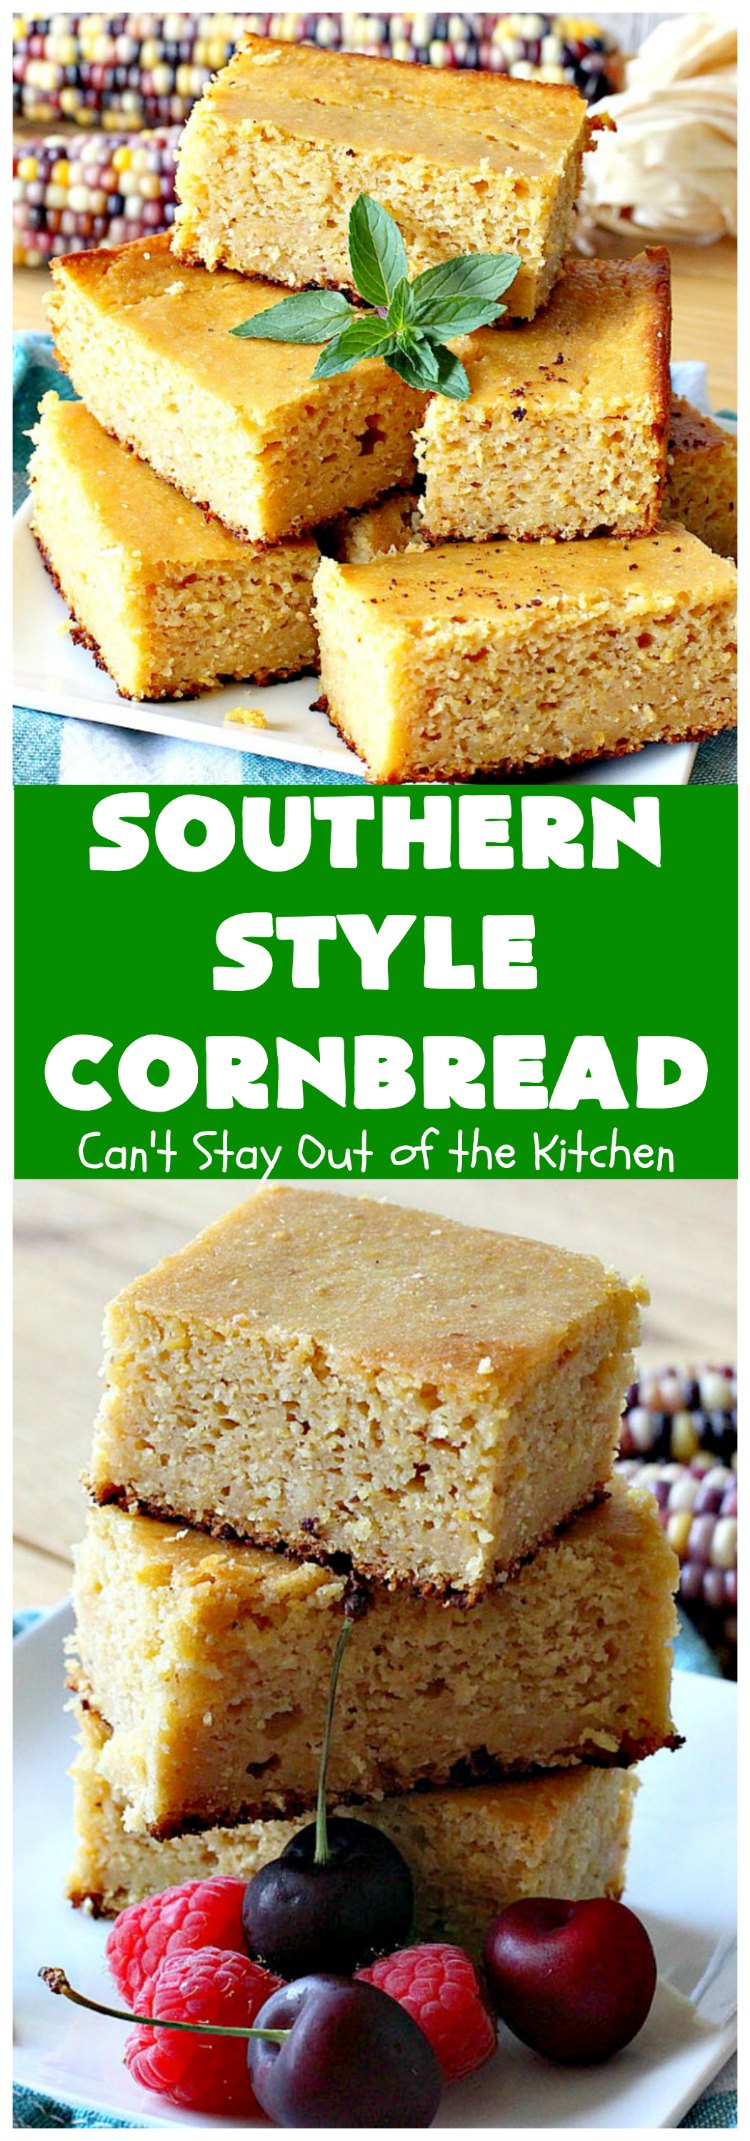 Southern-Style Cornbread | Can't Stay Out of the Kitchen